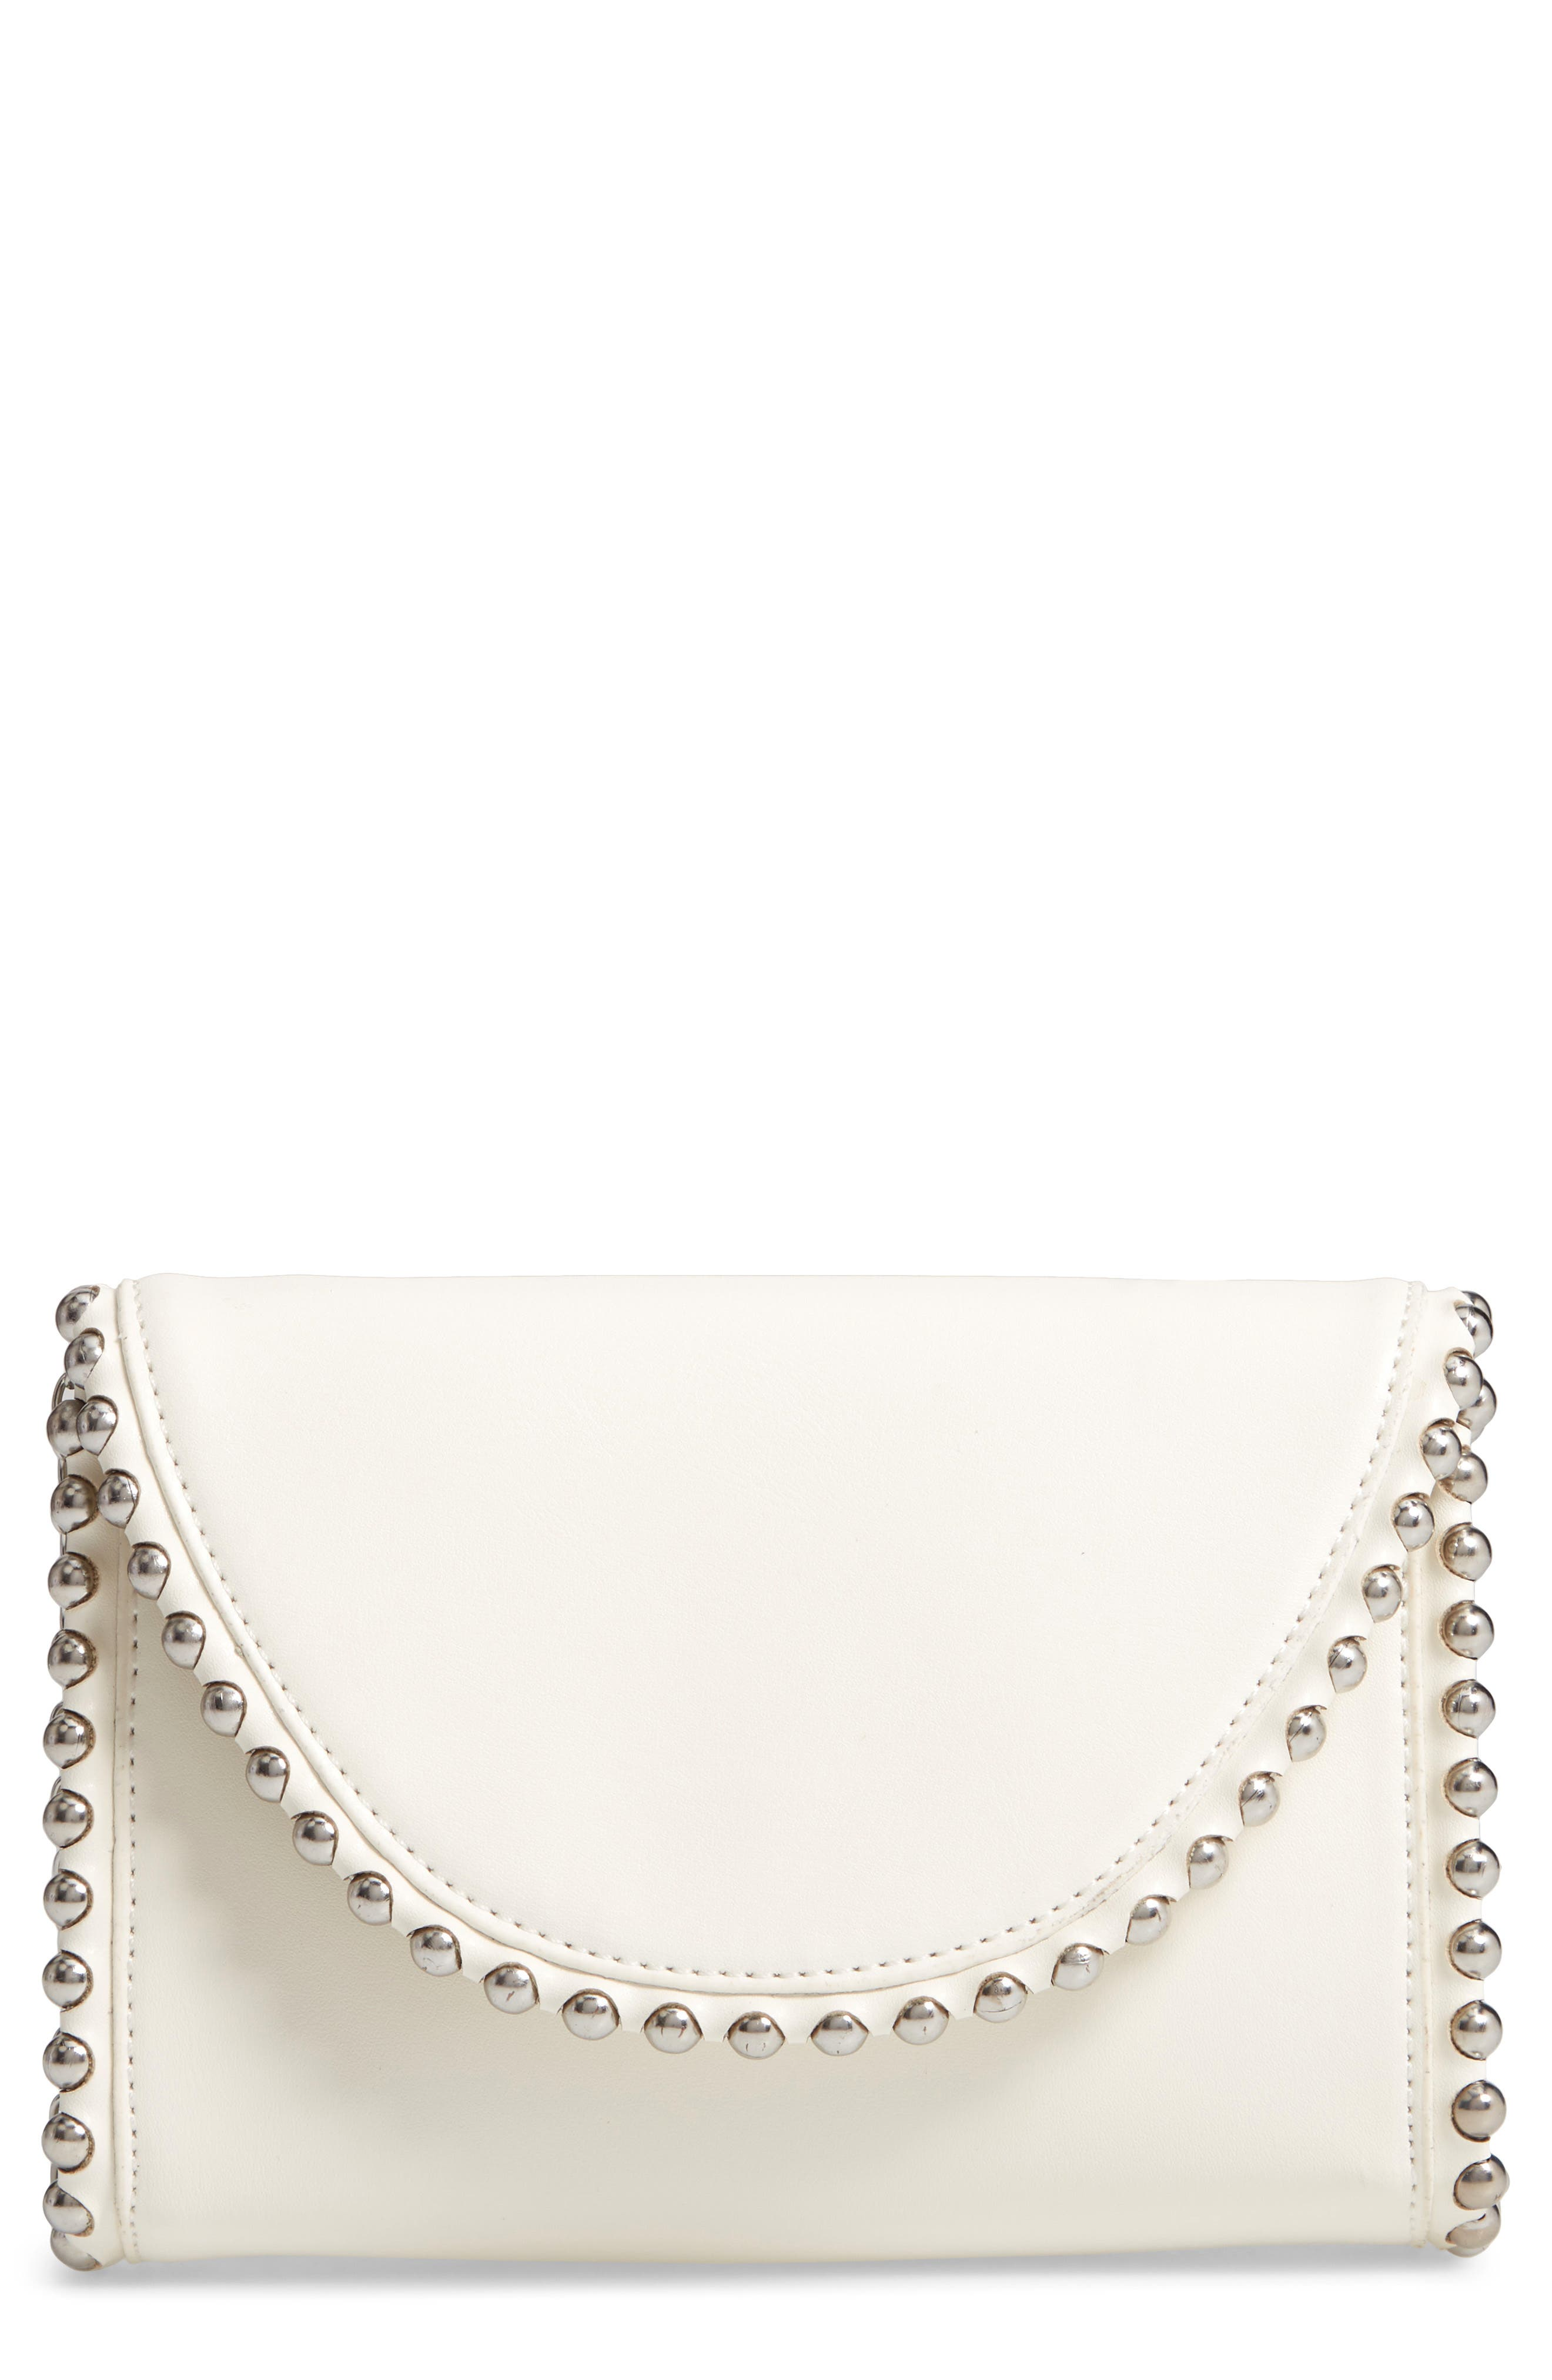 Stud Edge Faux Leather Crossbody Bag,                             Main thumbnail 1, color,                             IVORY